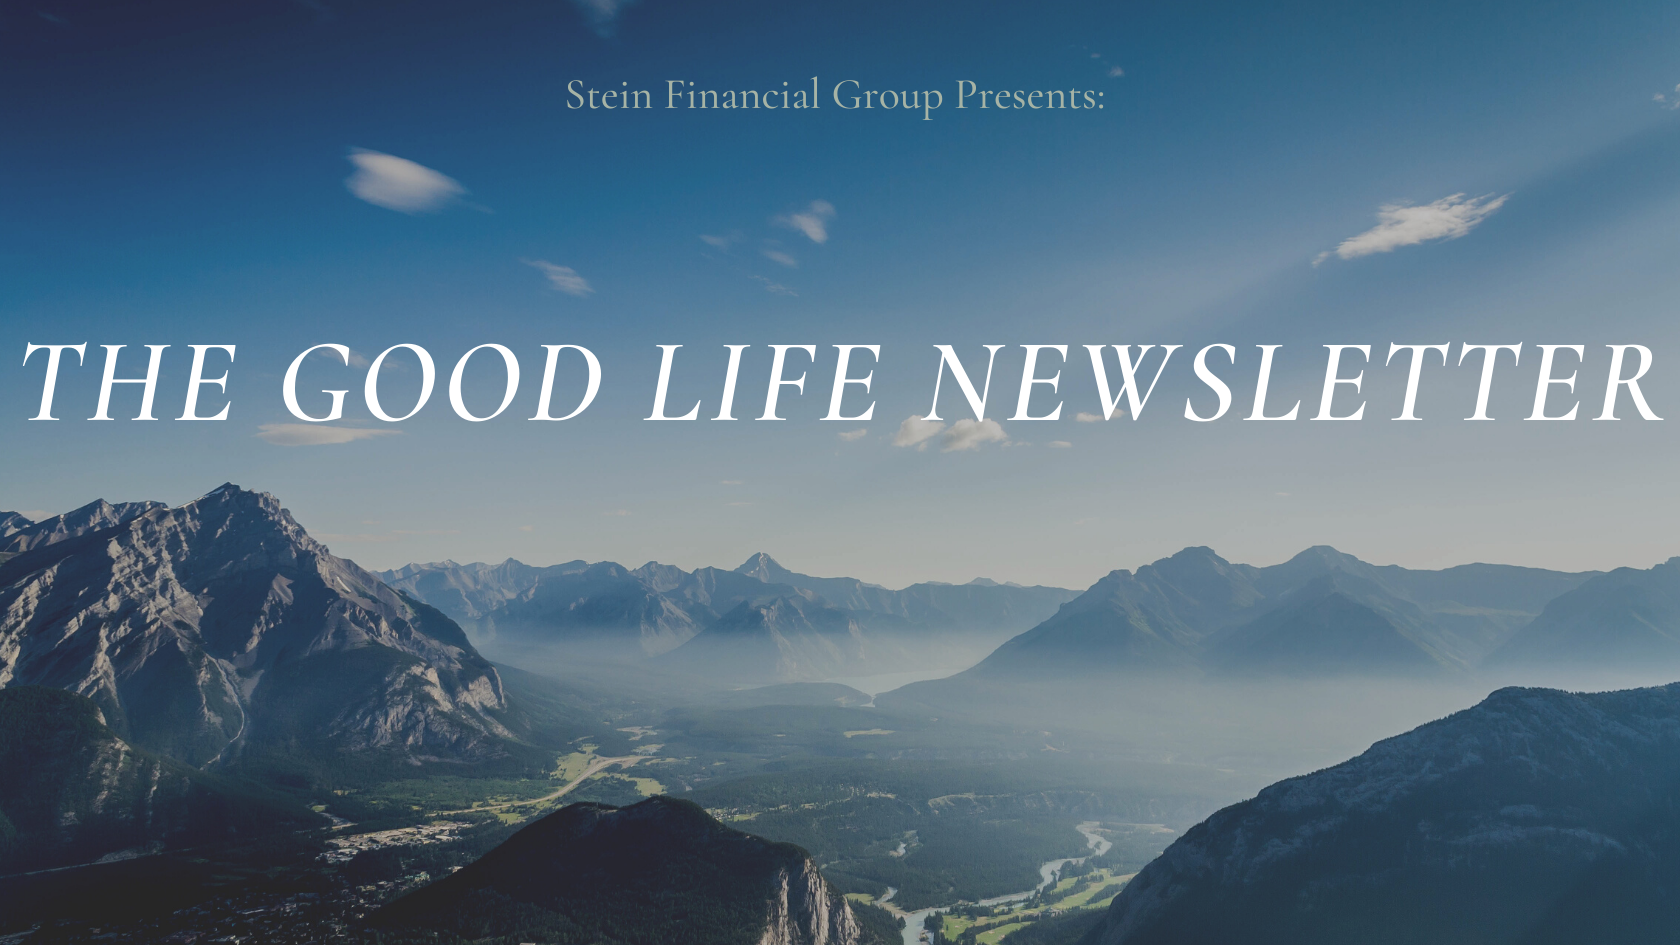 The Good Life Newsletter - Economic Recovery Updates & Insight Into Continued Stock Growth Thumbnail